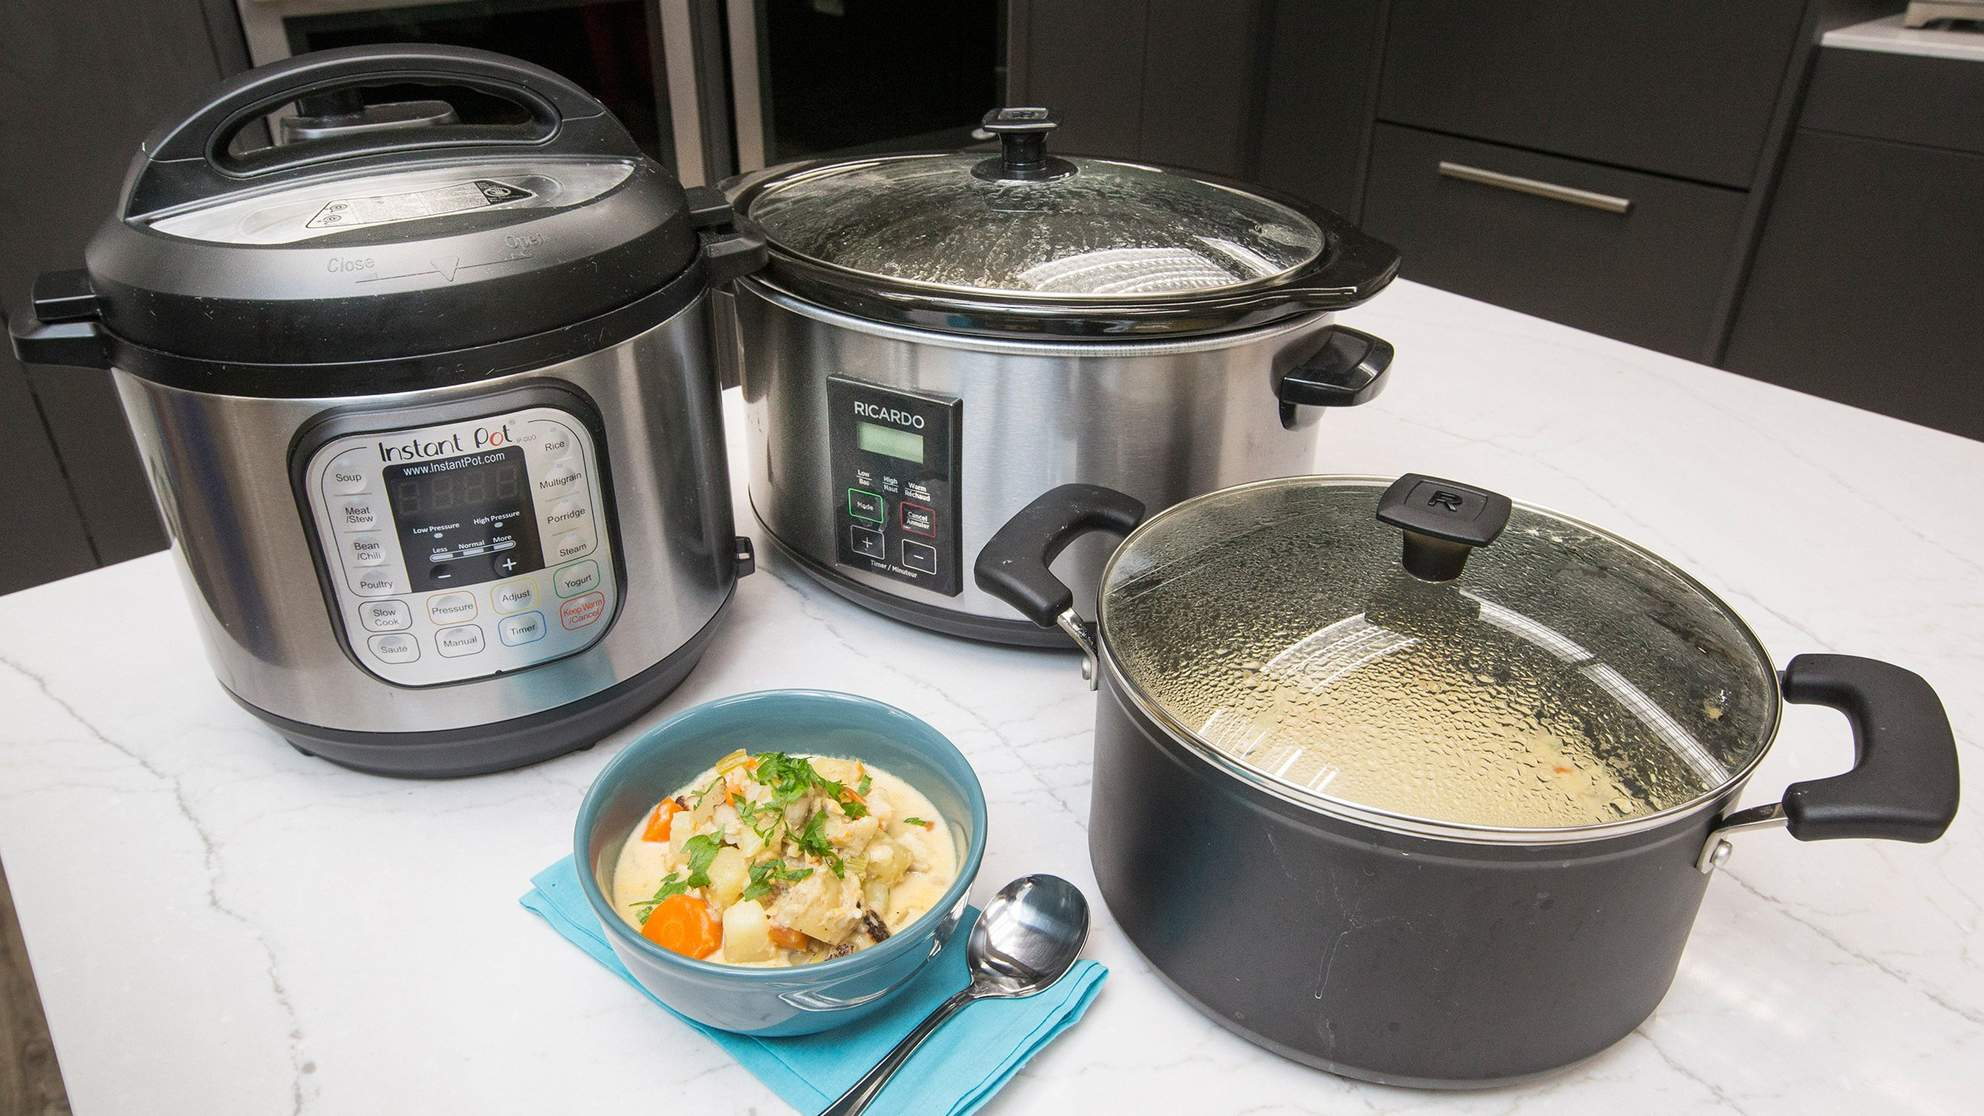 The Difference Between an Instant Pot and a Slow Cooker